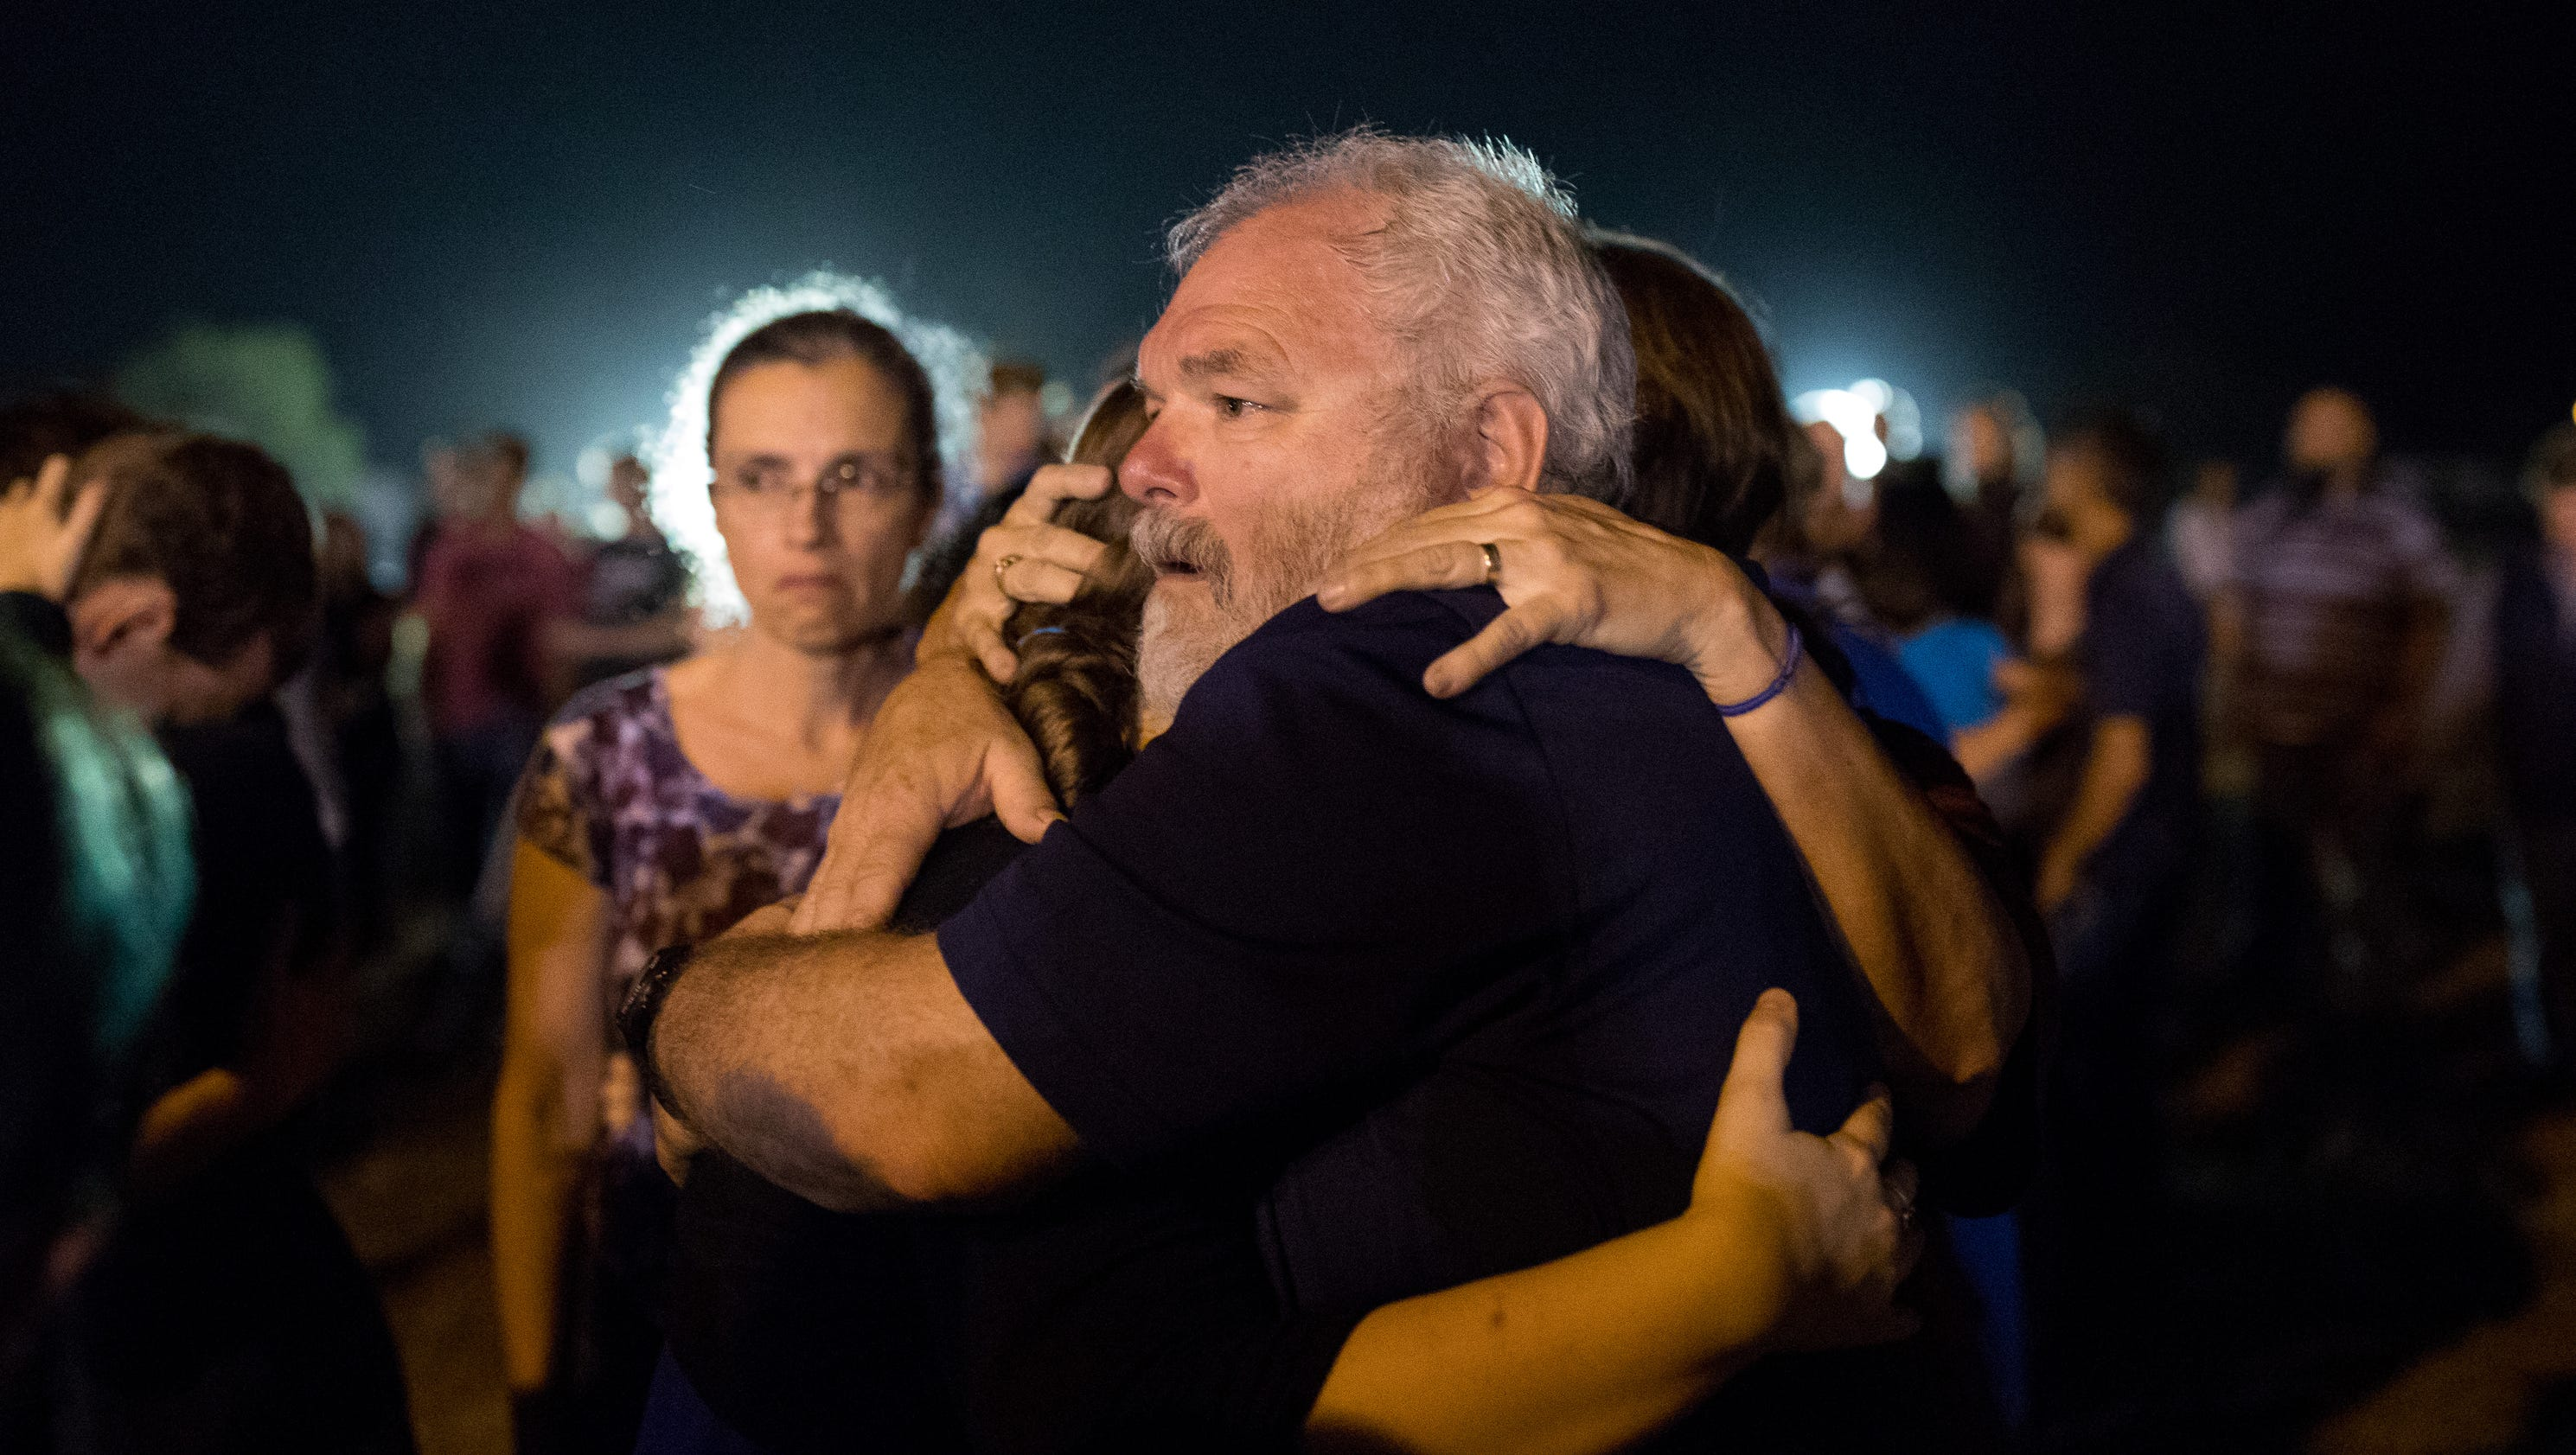 The man who put an end to the carnage in Texas